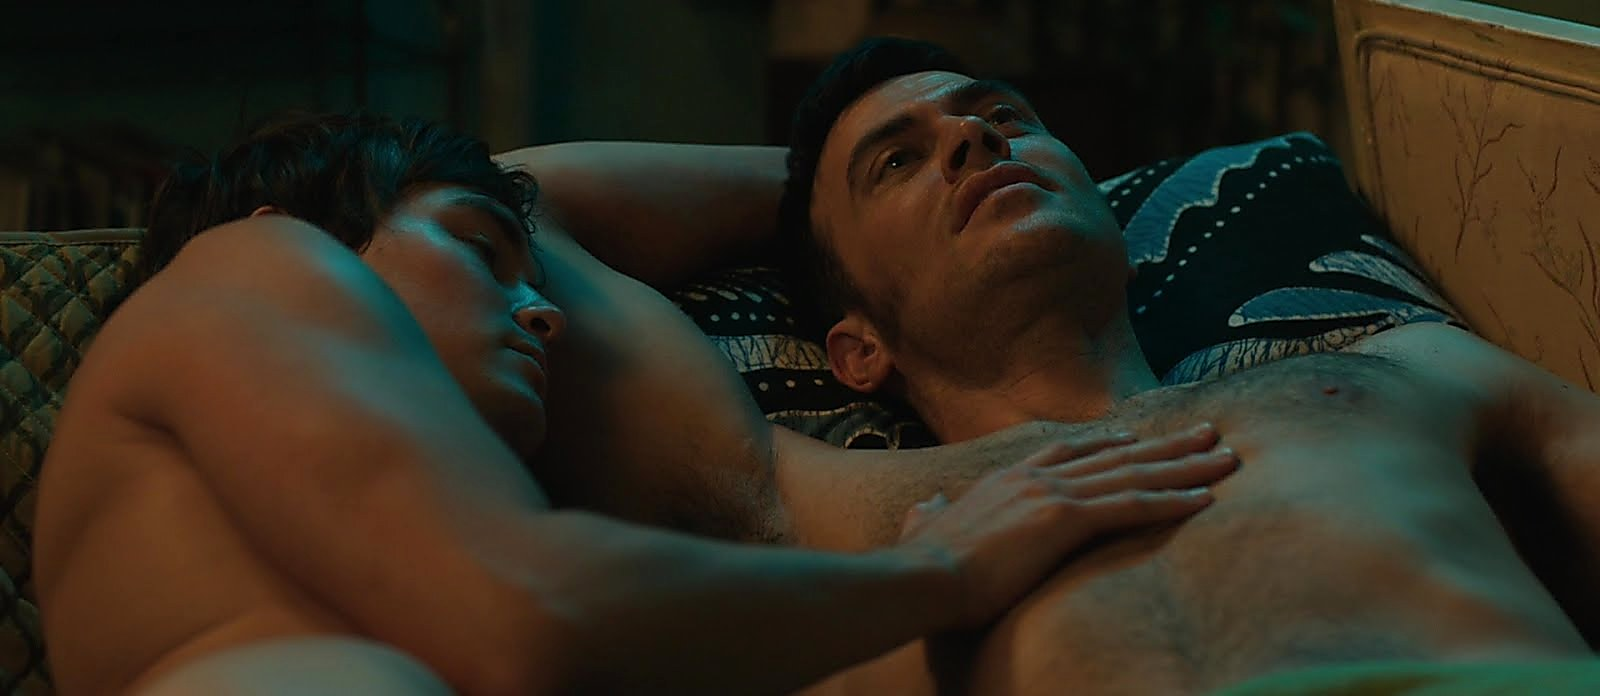 Cheyenne Jackson sexy shirtless scene July 16, 2018, 1pm